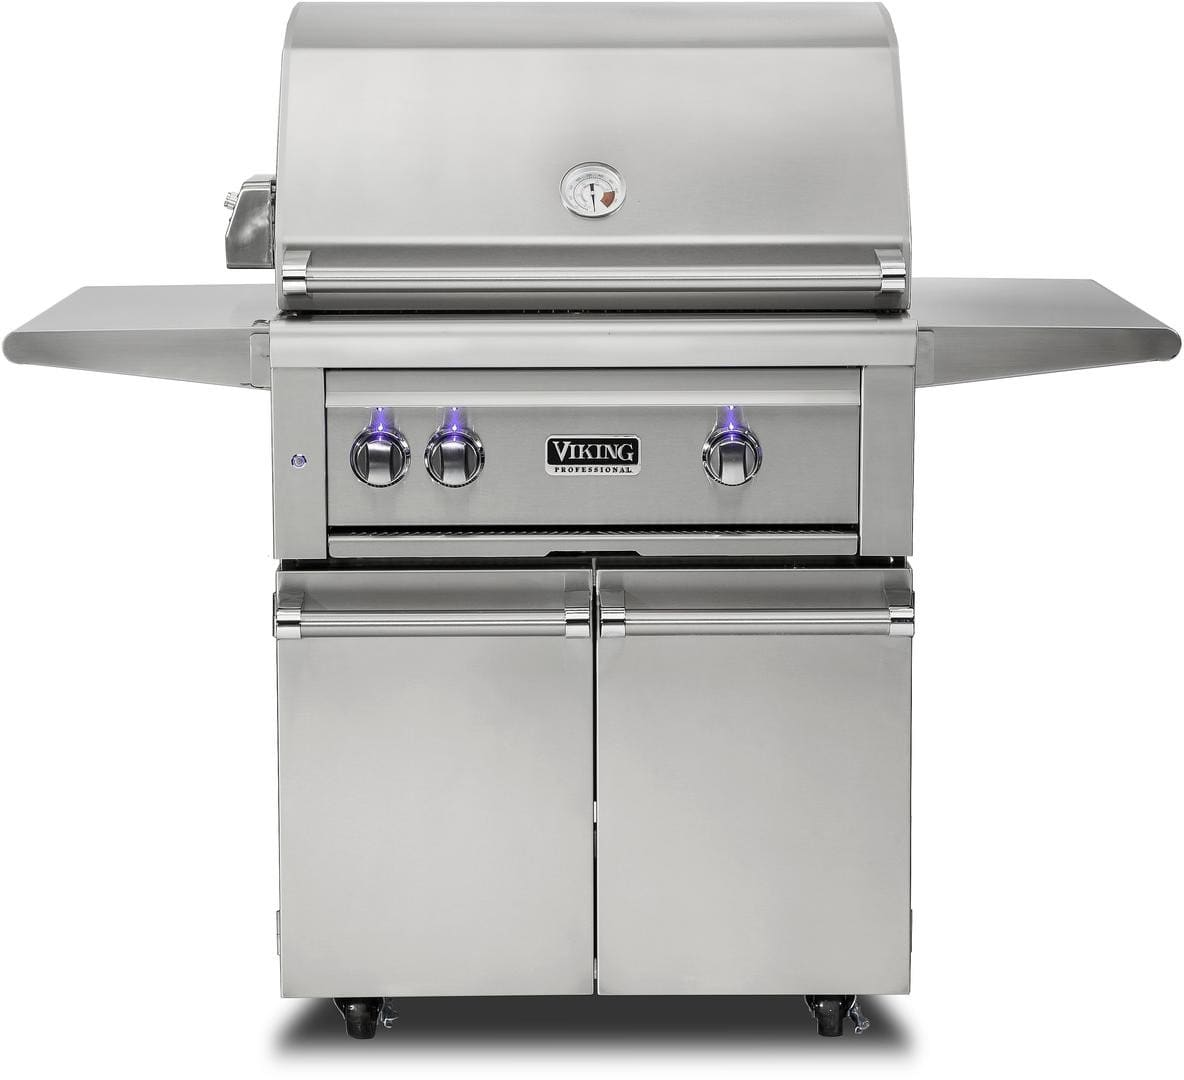 Viking Vqgfs5300lss 30 Inch Freestanding Grill With